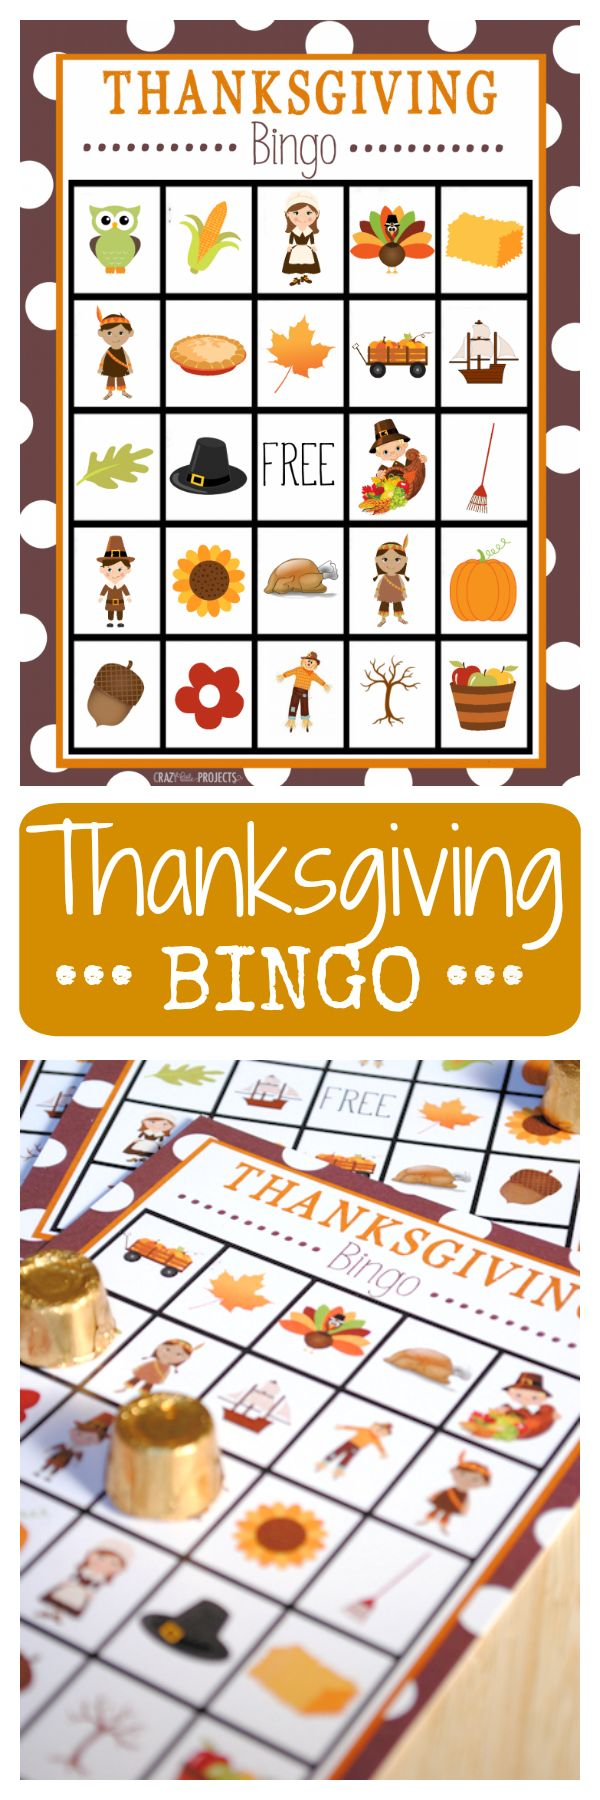 Free Printable Thanksgiving Bingo cards for kids. Print them out for a Thanksgiving party or to play before dinner on the big day.